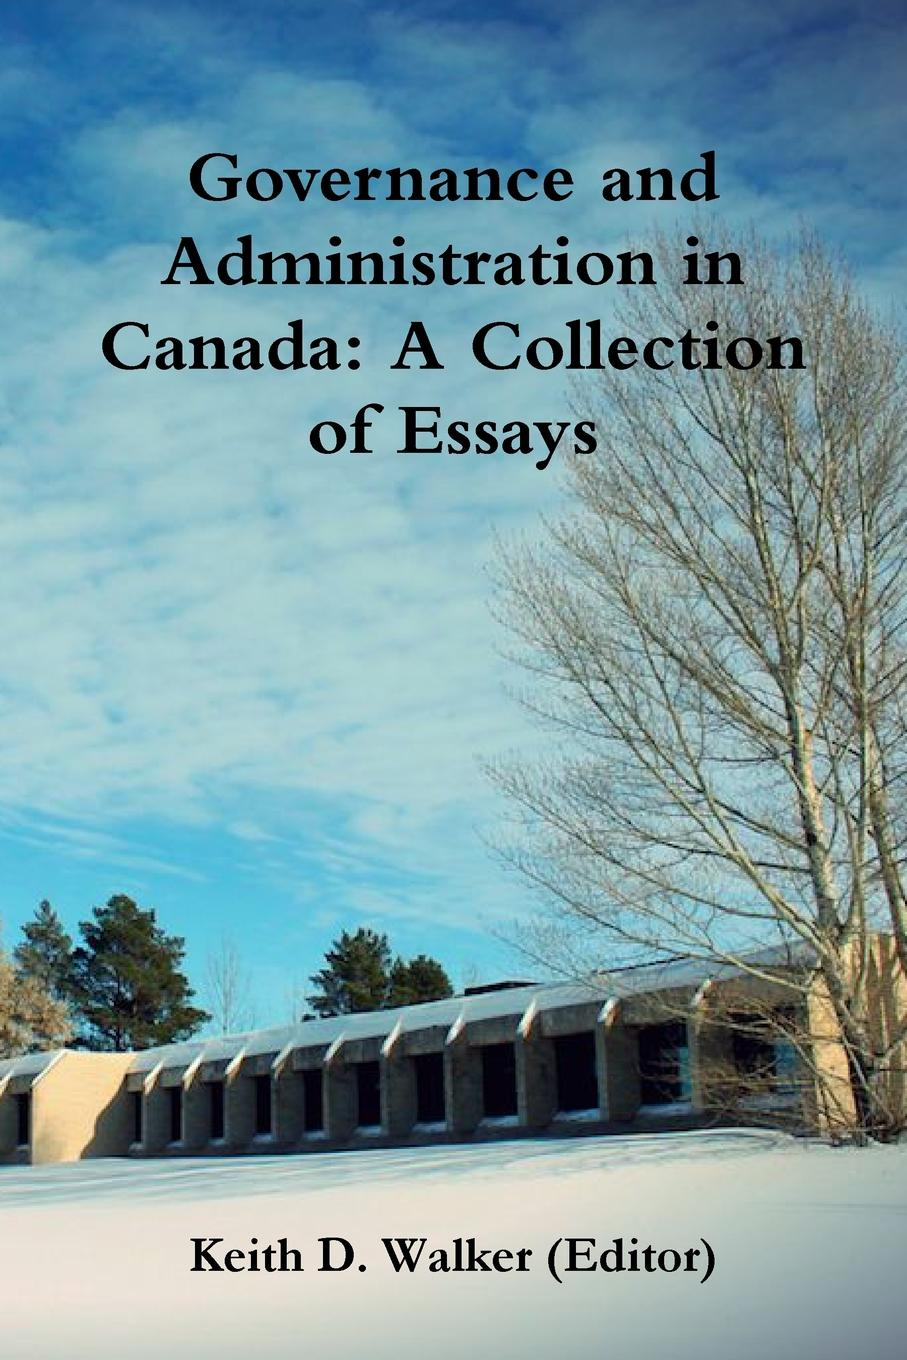 Keith D. Walker Governance and Administration in Canada. Collection of Essays public administration in uganda